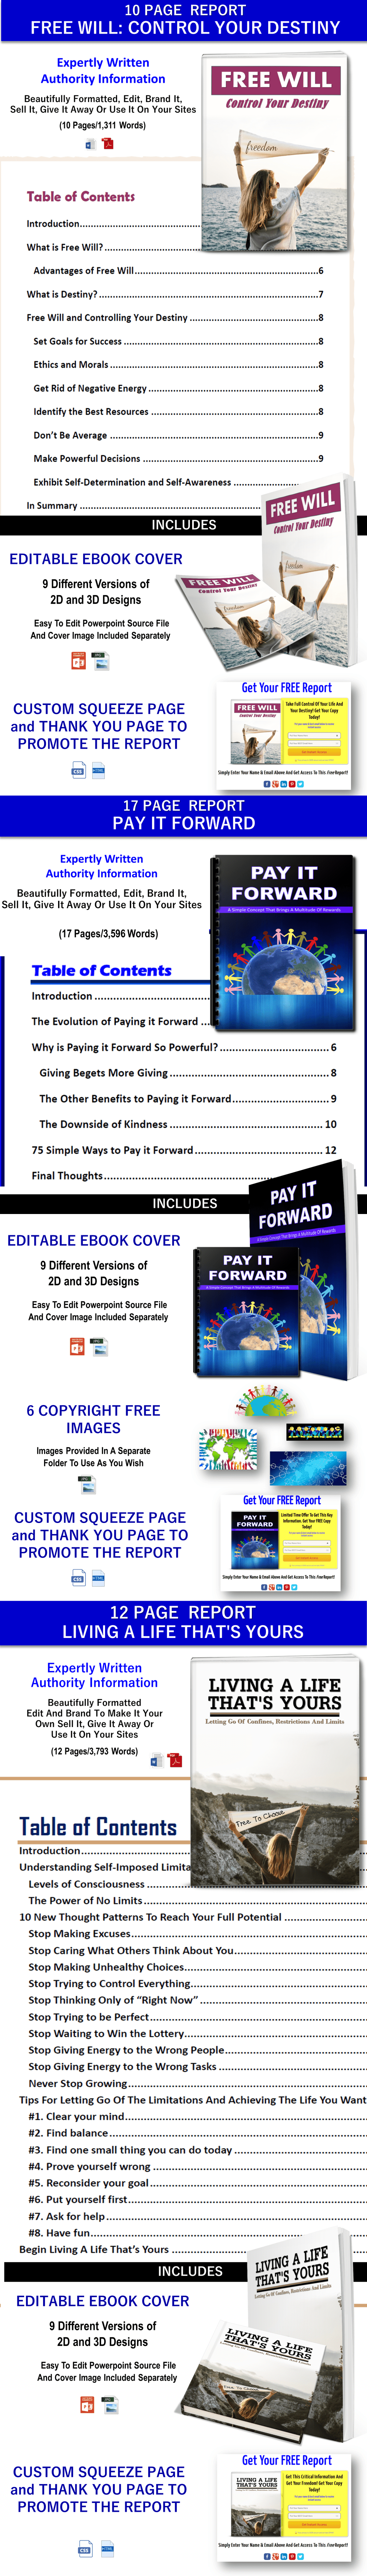 Self-help - Personal Development Content - PLR Rights